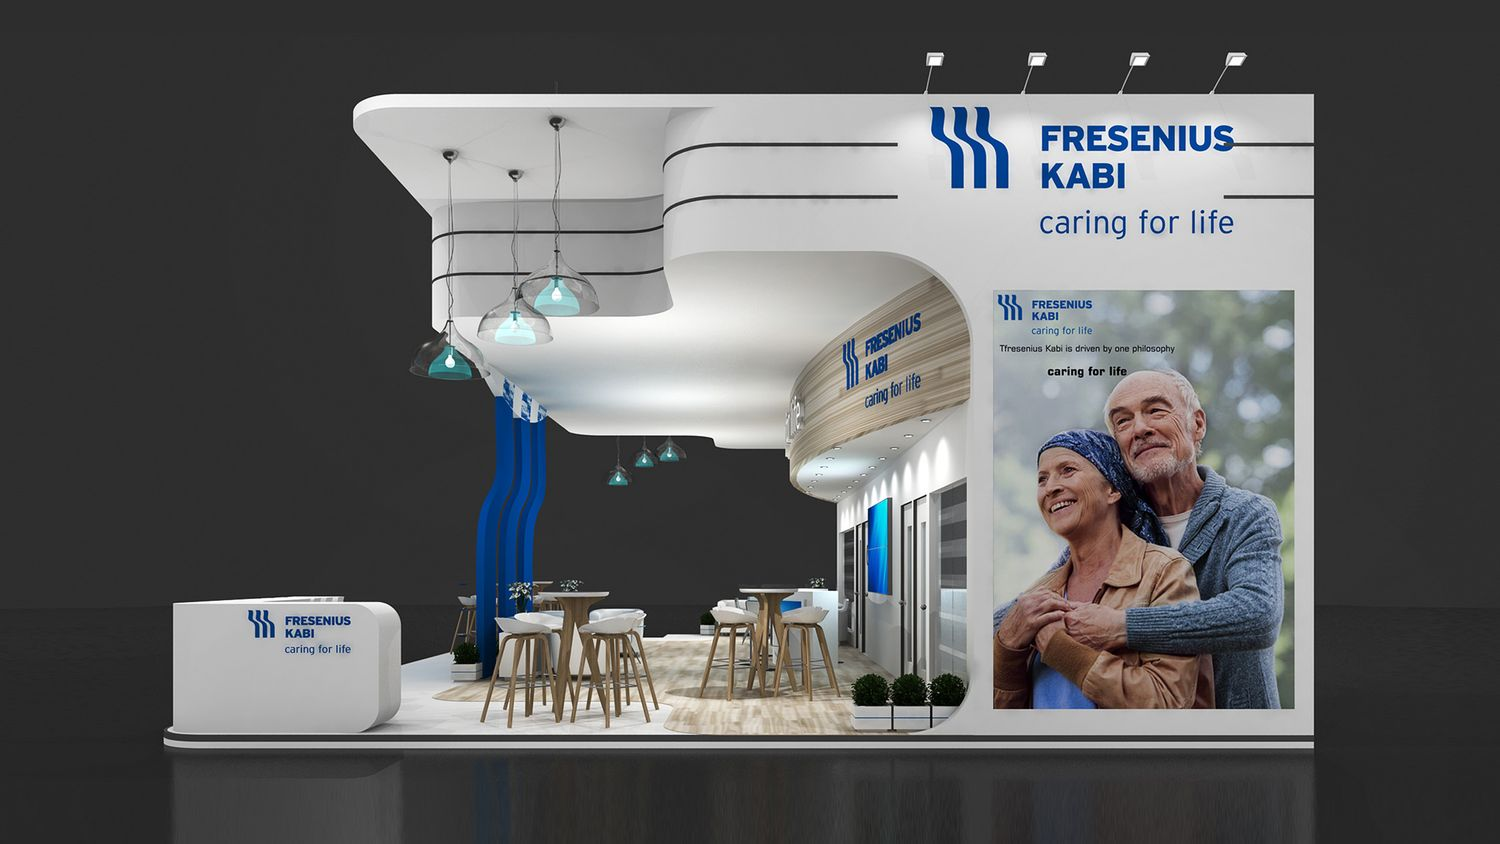 Trade show exhibit design